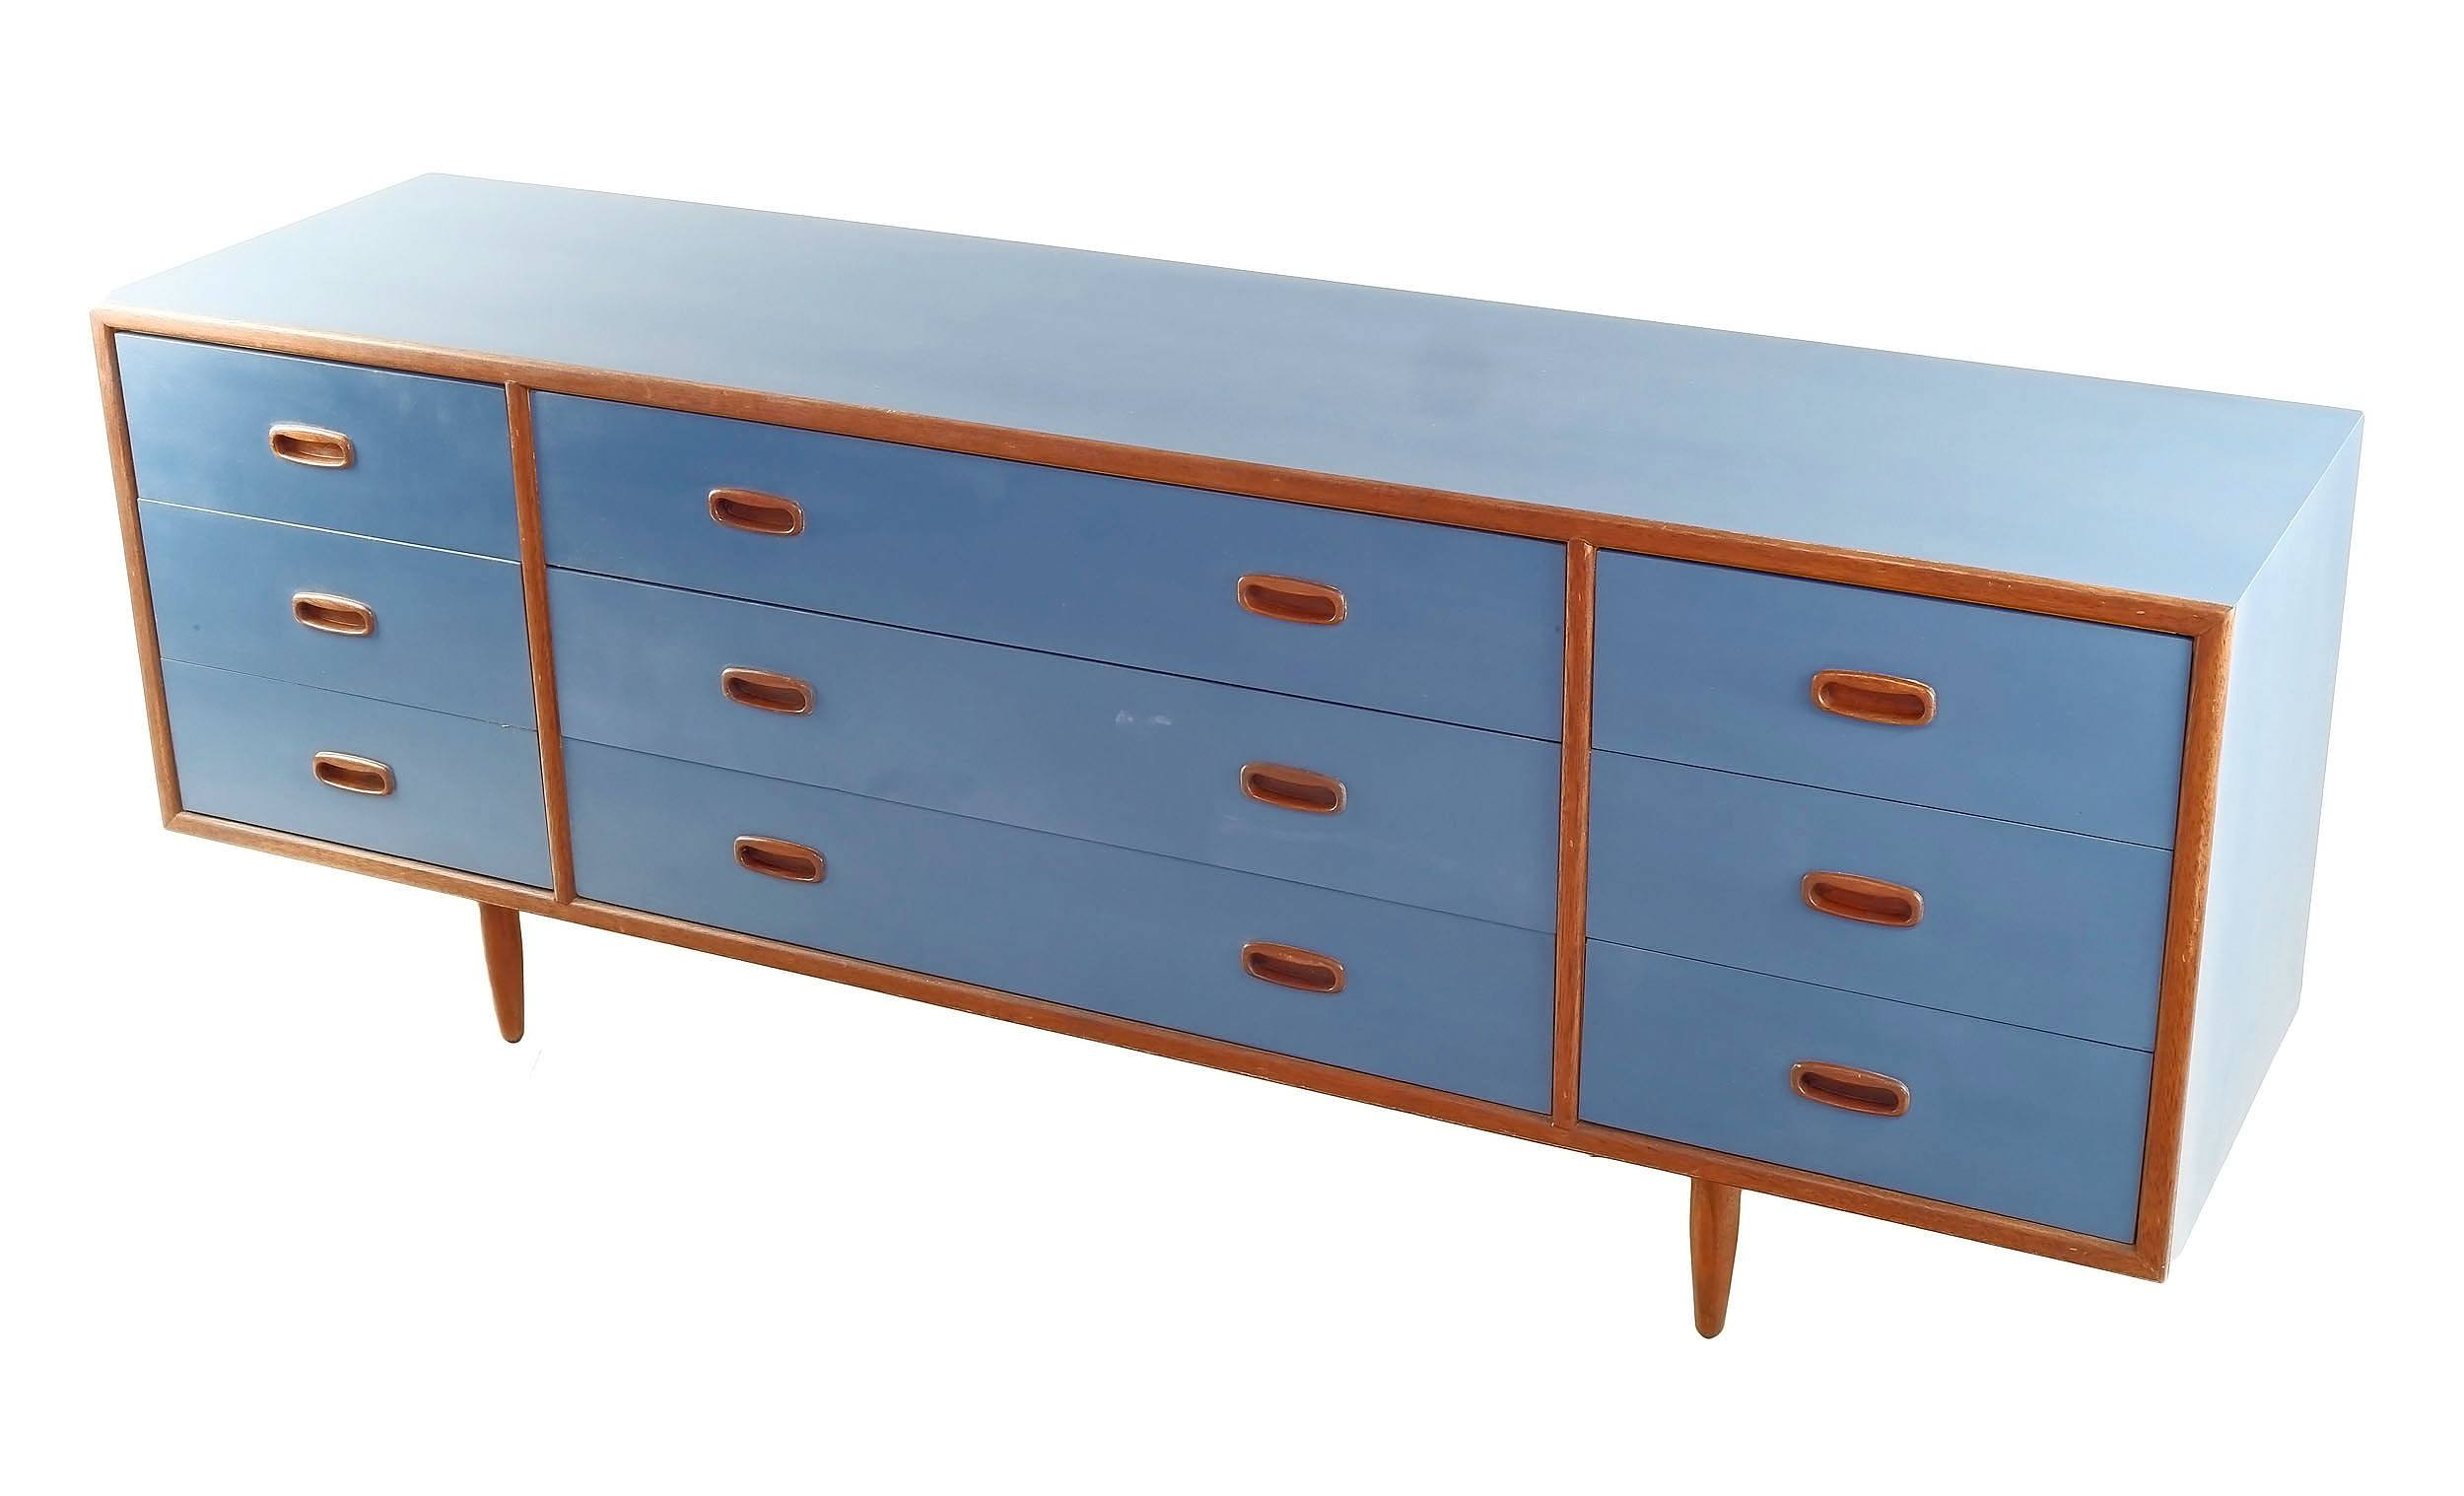 'Alrob Lowline Teak Sideboard with Later Blue Painted Exterior, Circa 1970'